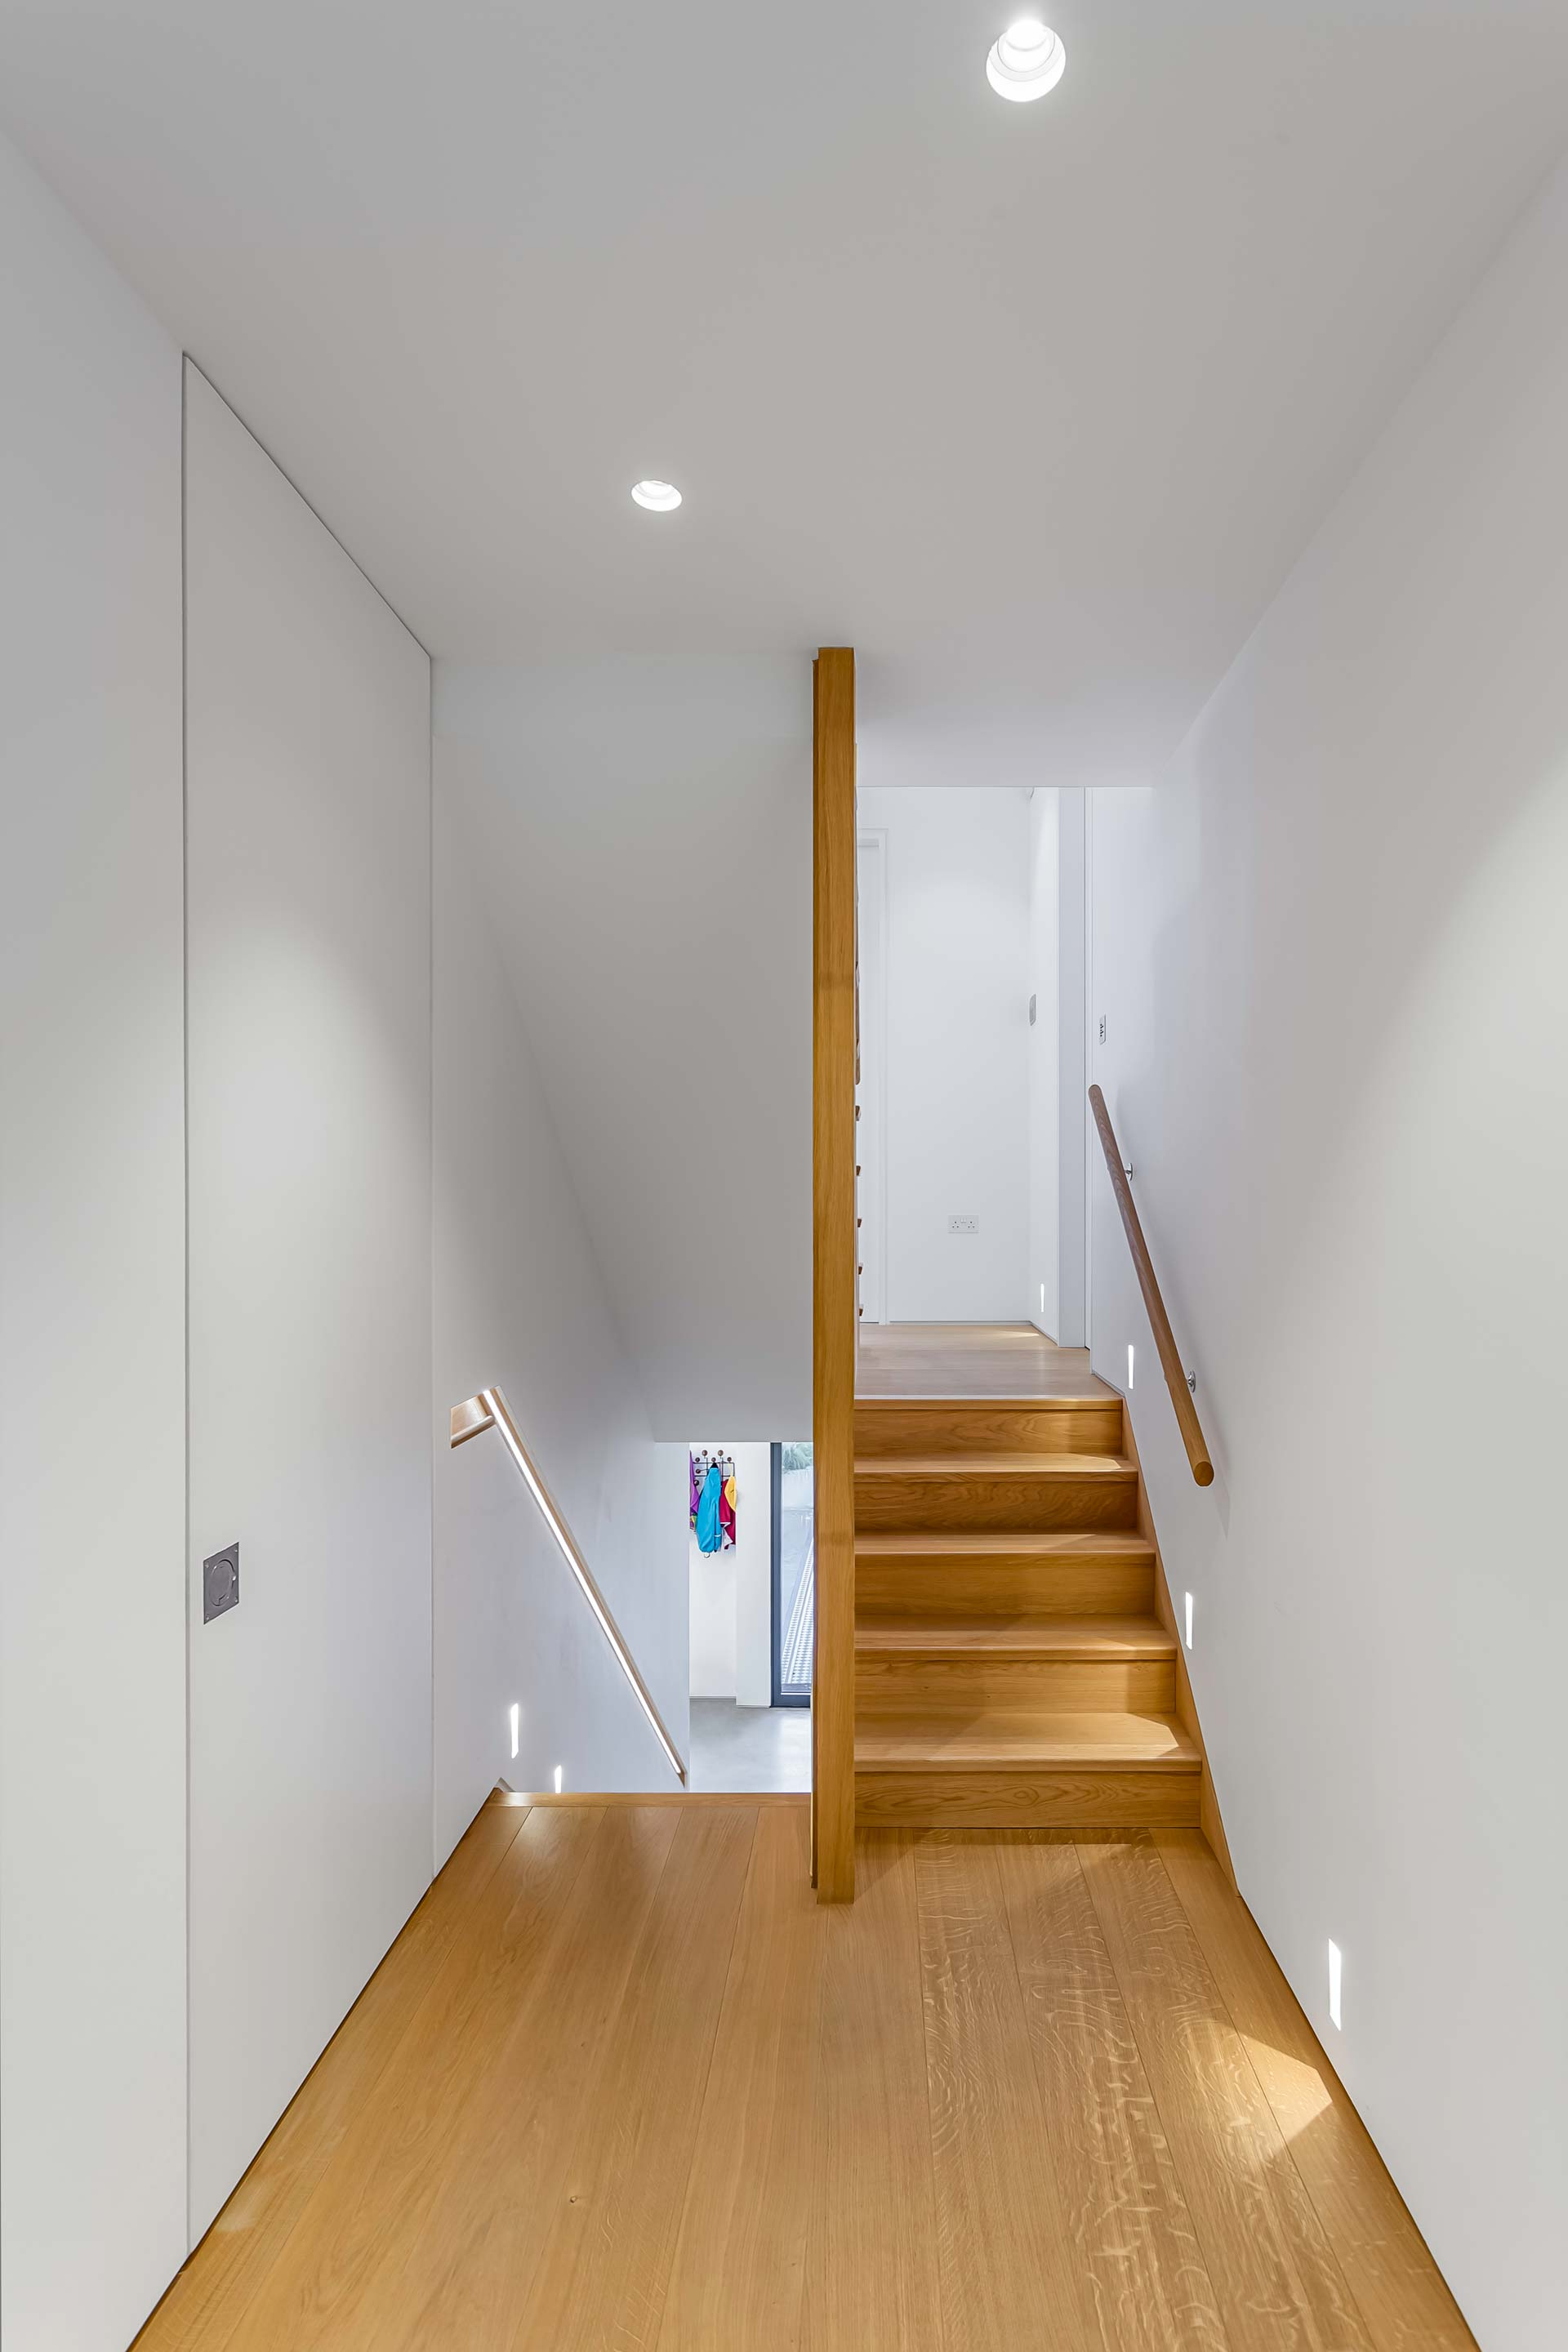 Helix Gardens Brixton Full Renovation And Extension With New Basement 08